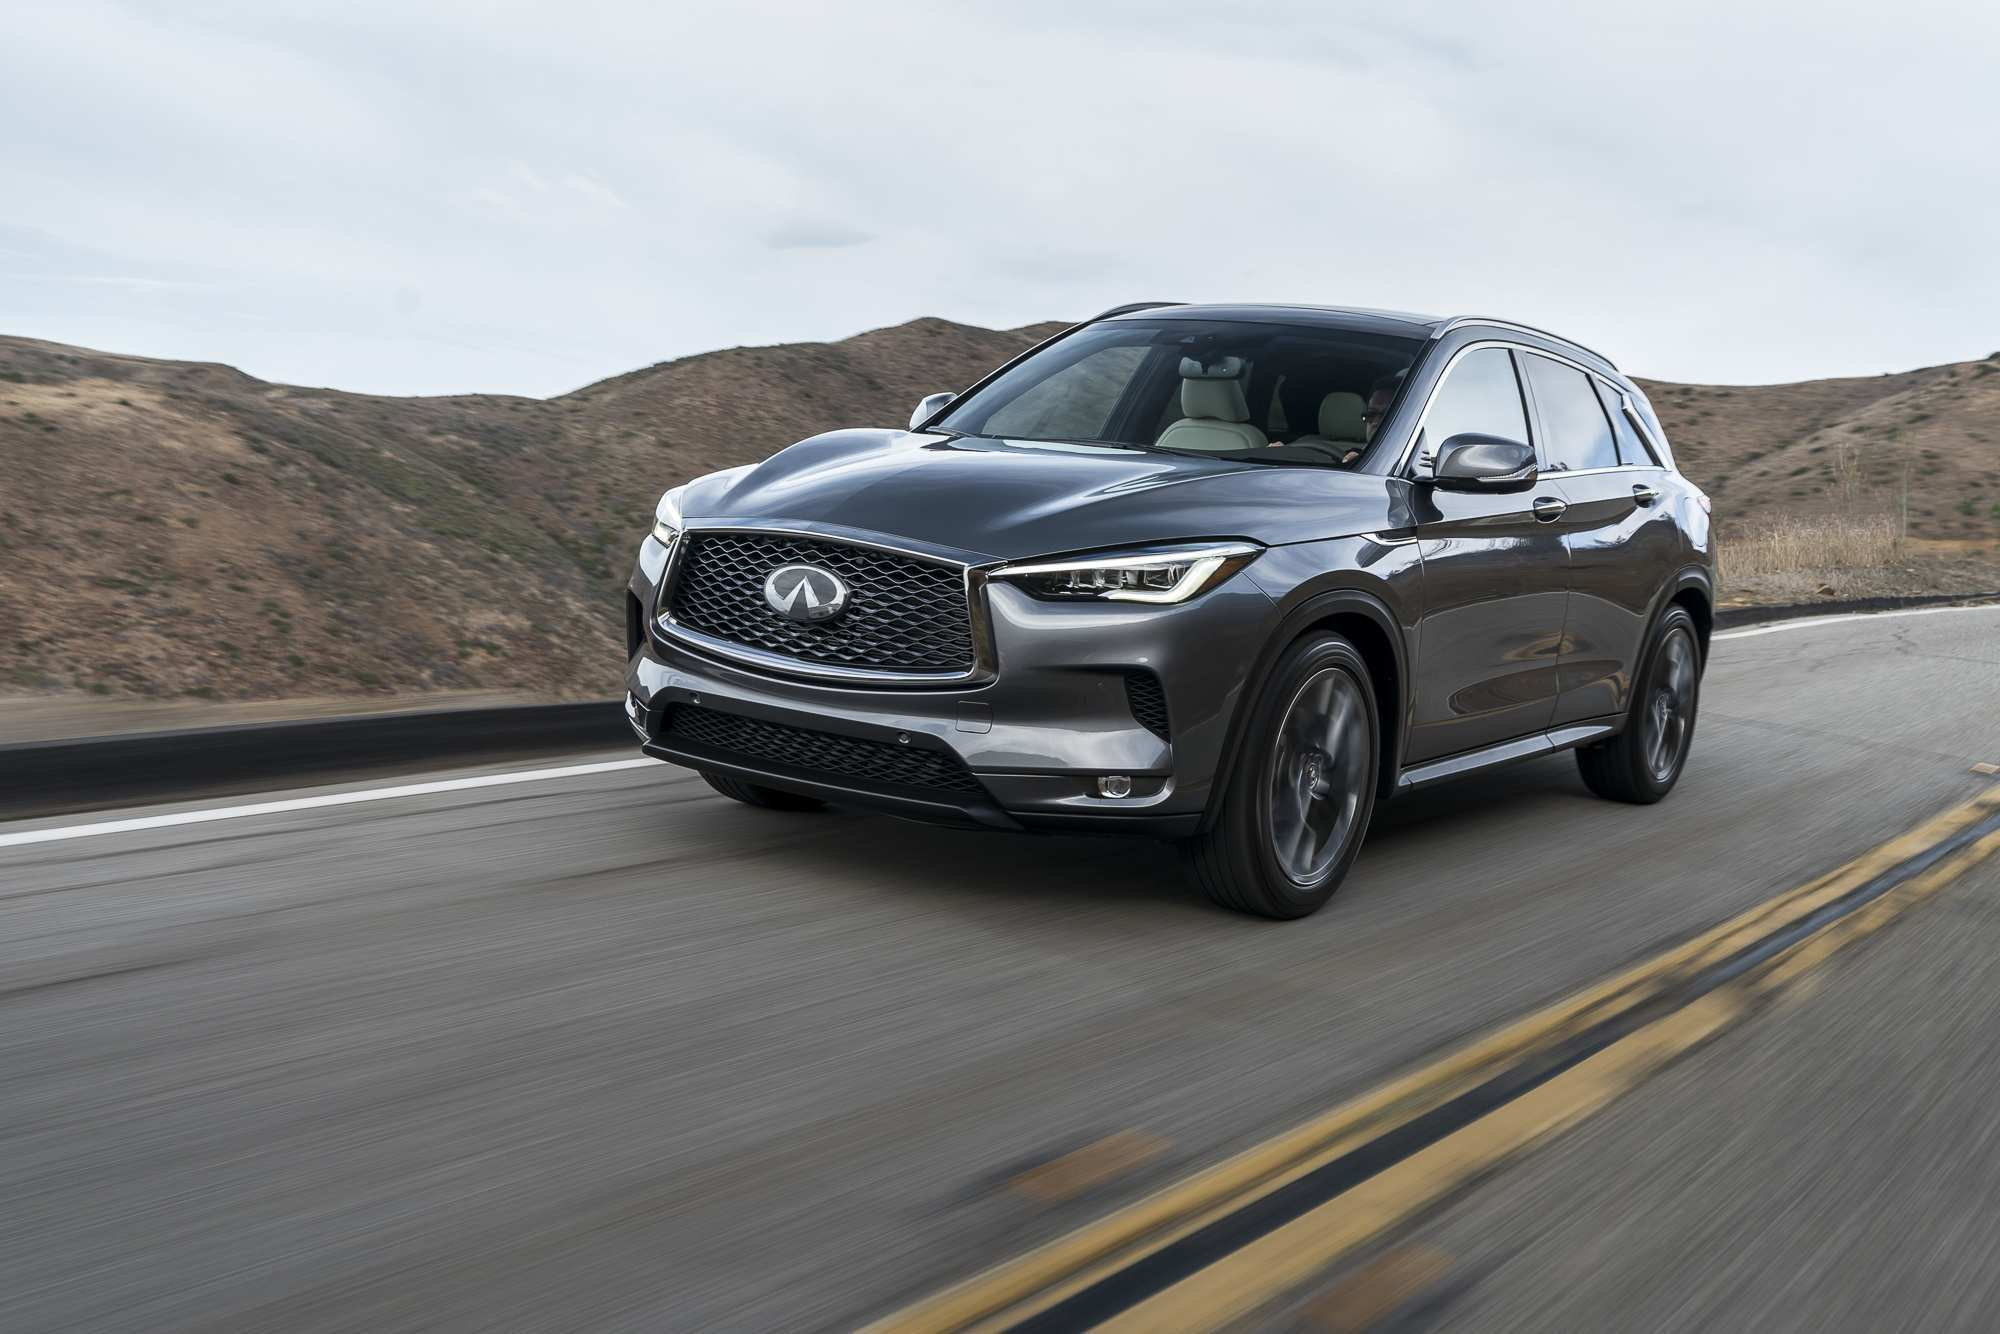 76 Best Review The Infiniti Qx50 2019 Trunk Specs And Review Style with The Infiniti Qx50 2019 Trunk Specs And Review